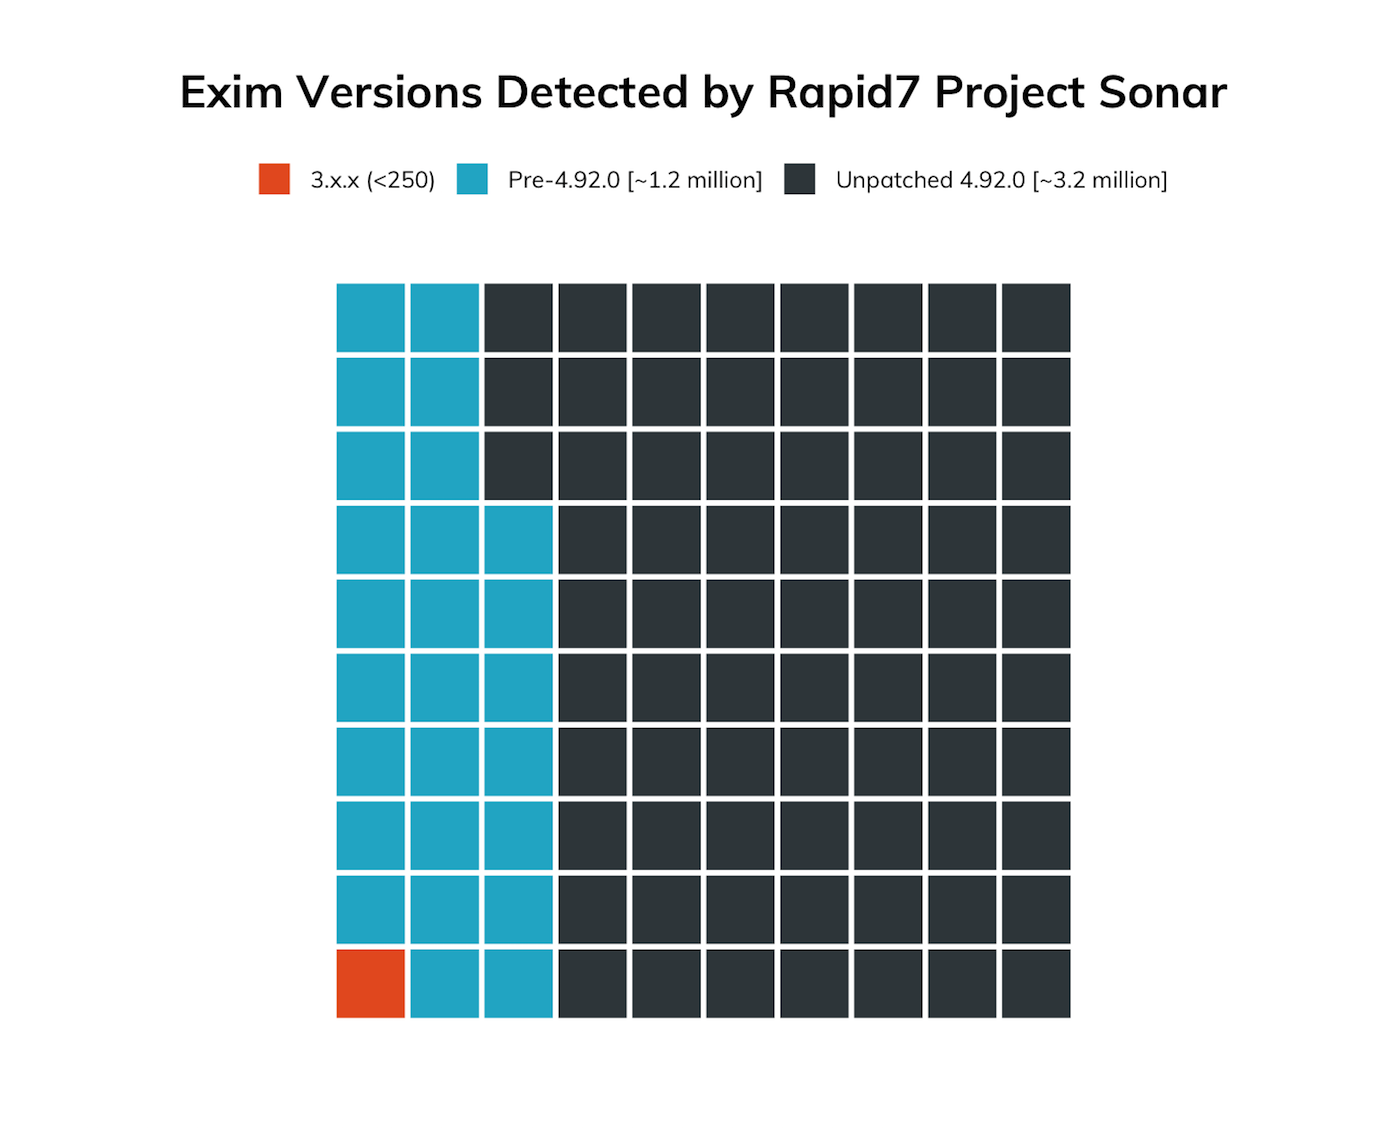 Exim versions detected by Rapid7 Project Sonar